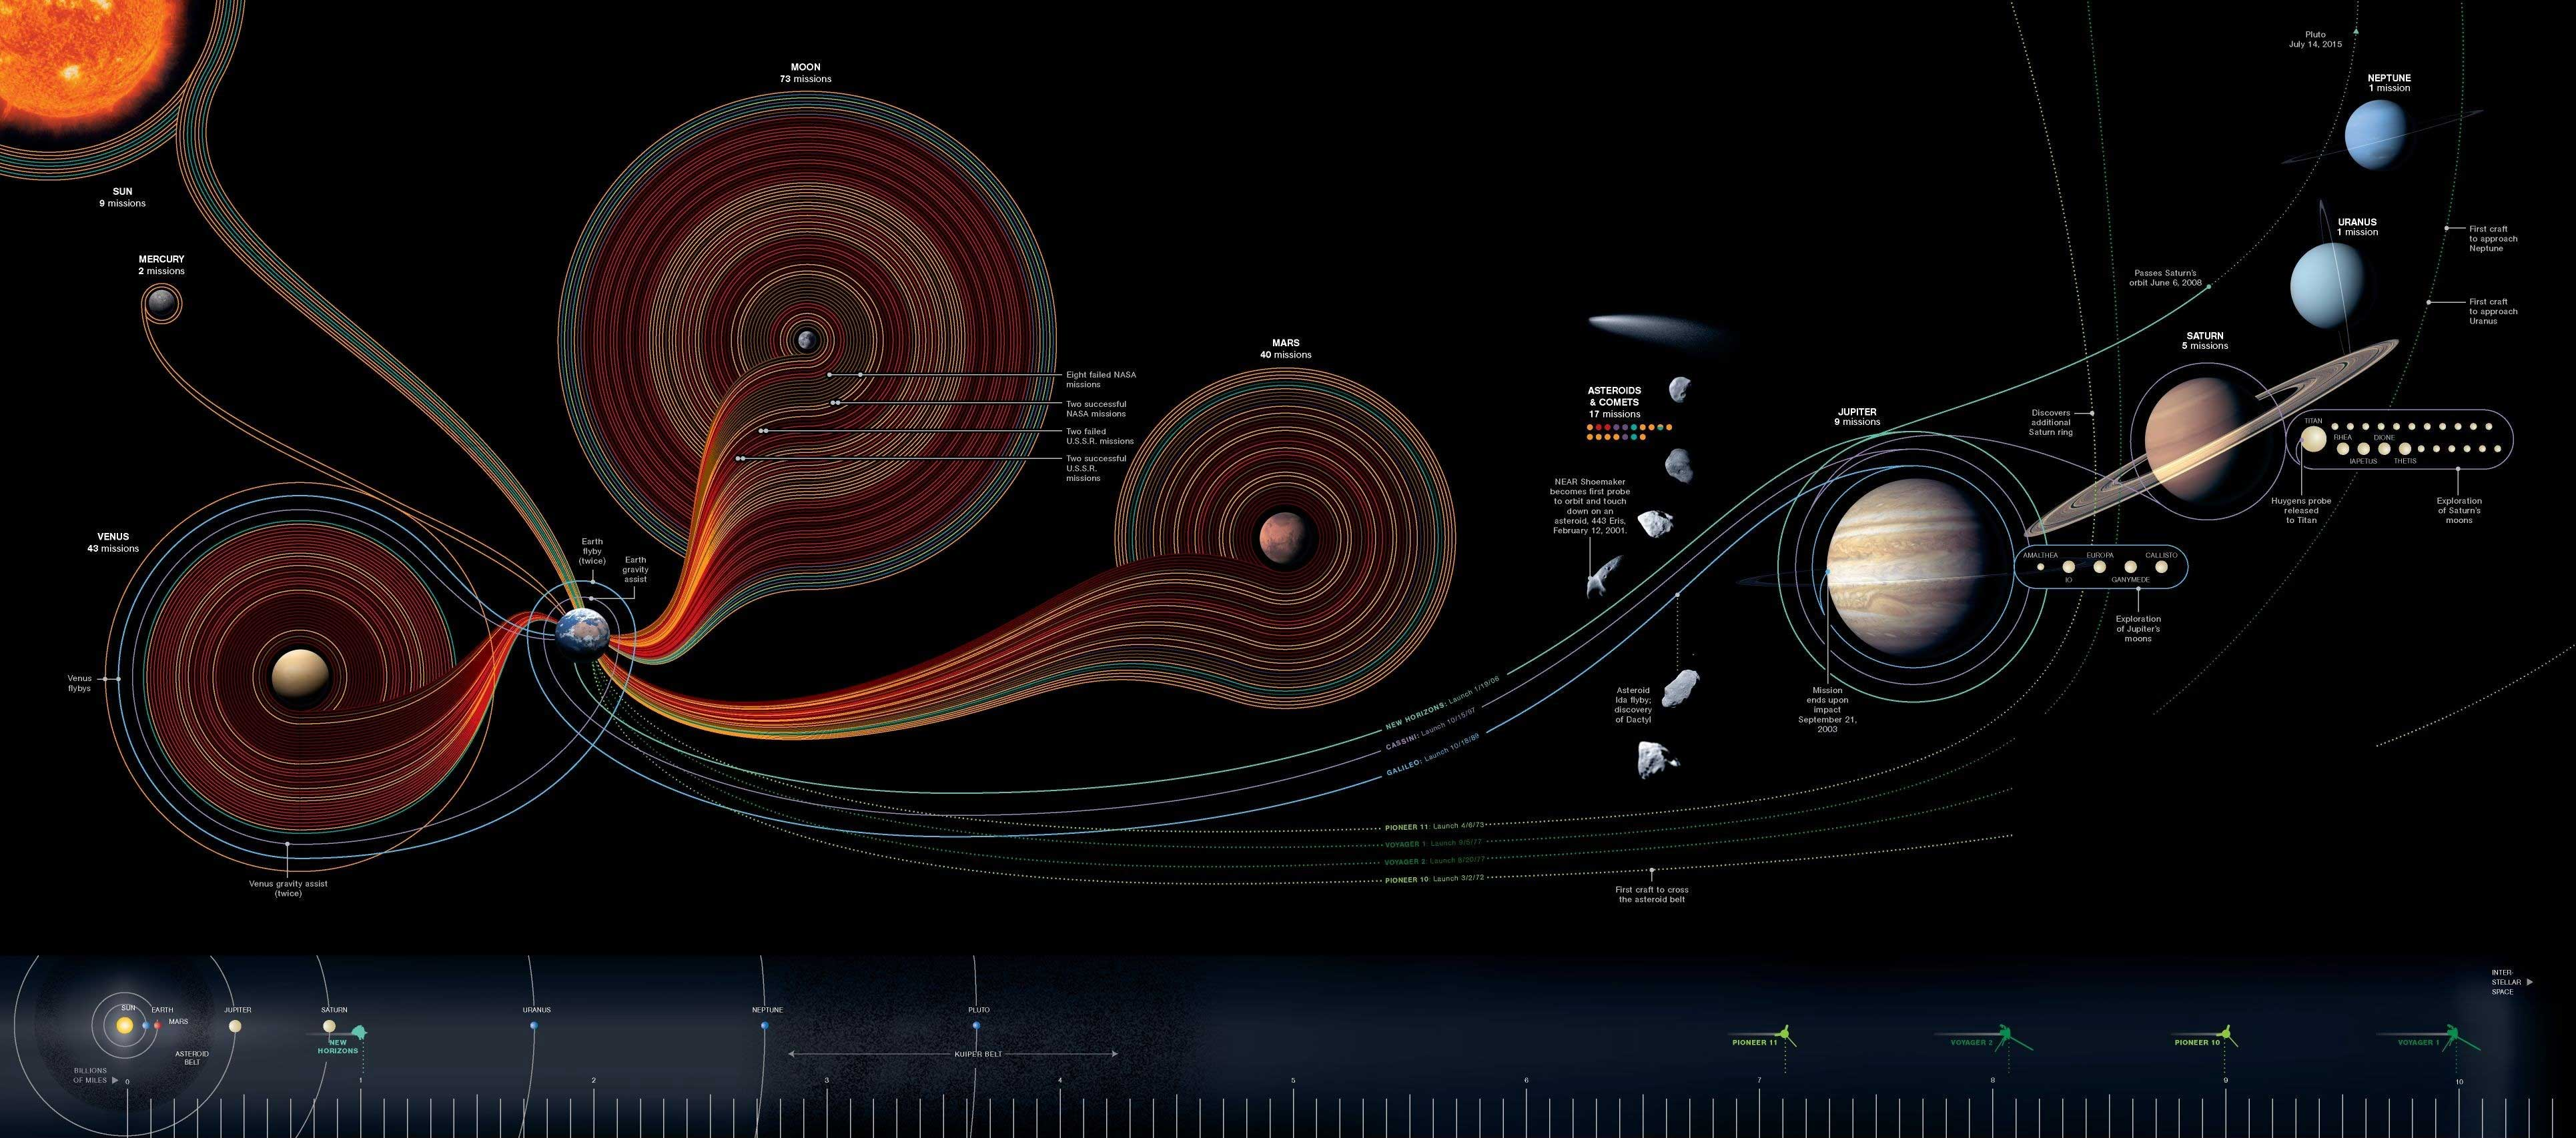 Space Missions and Probe Trajectories